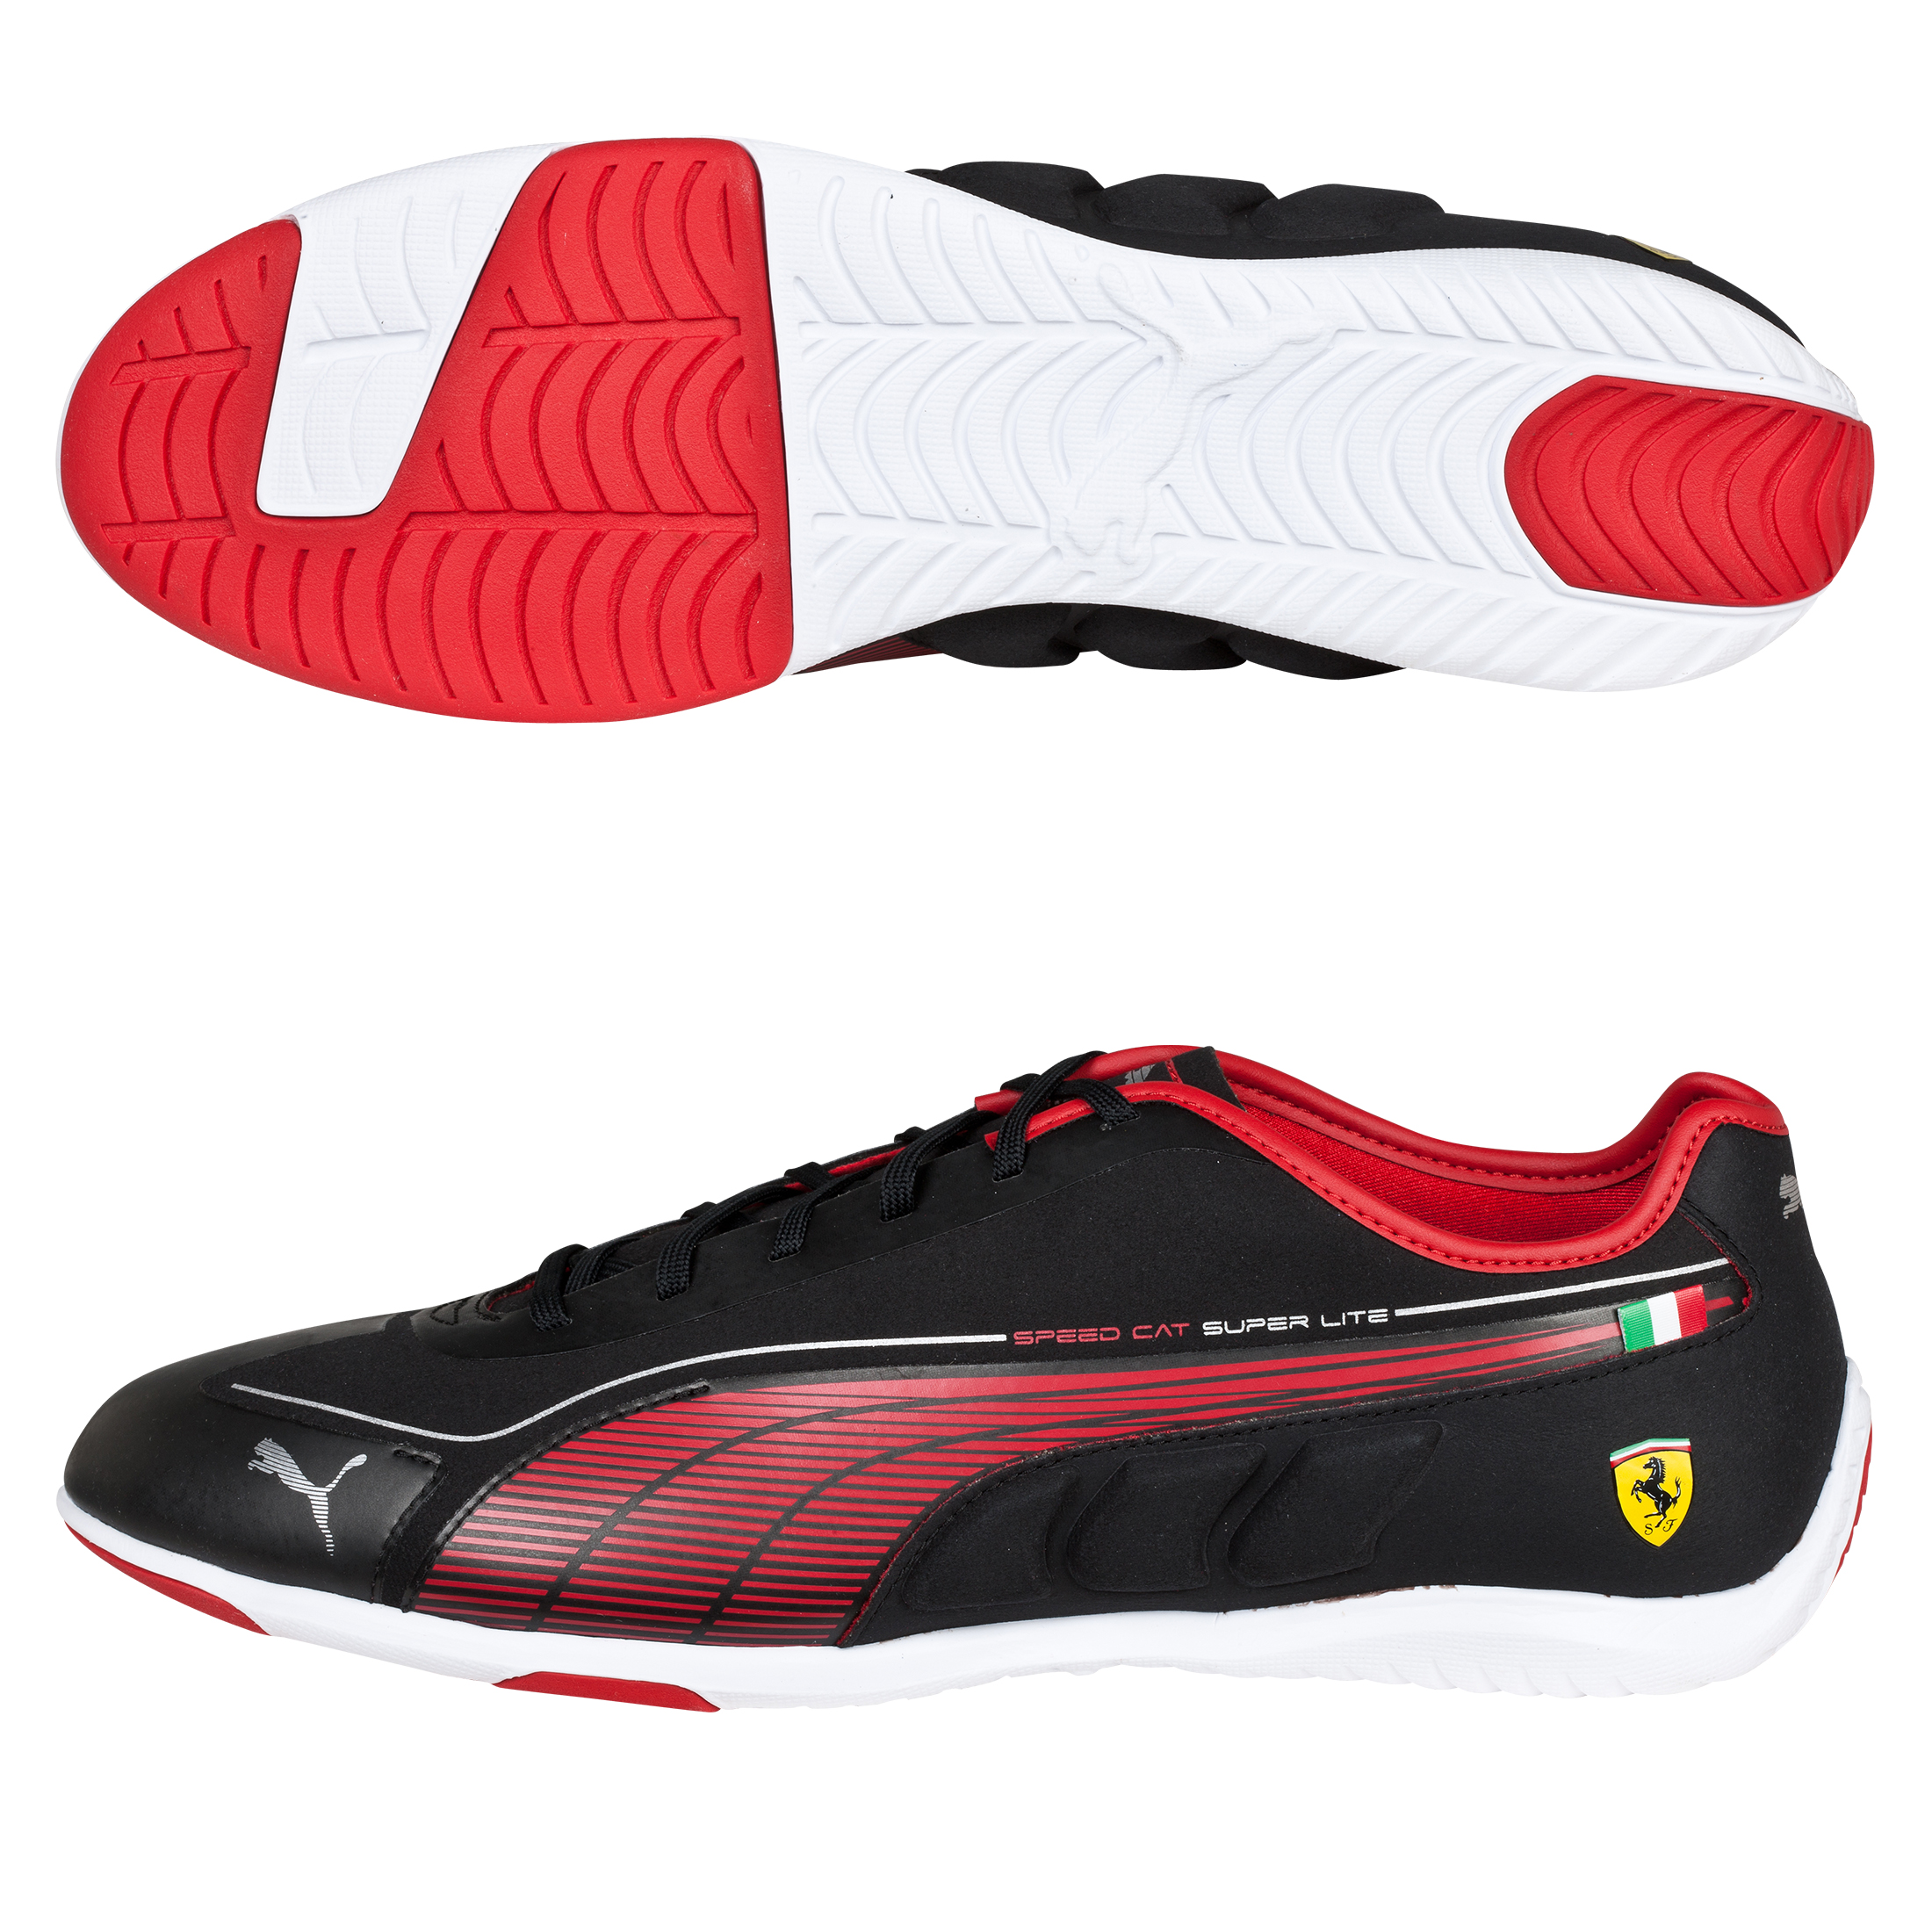 Scuderia Ferrari Speed Cat Super Lite Low Trainers - Black/Rosso Corsa